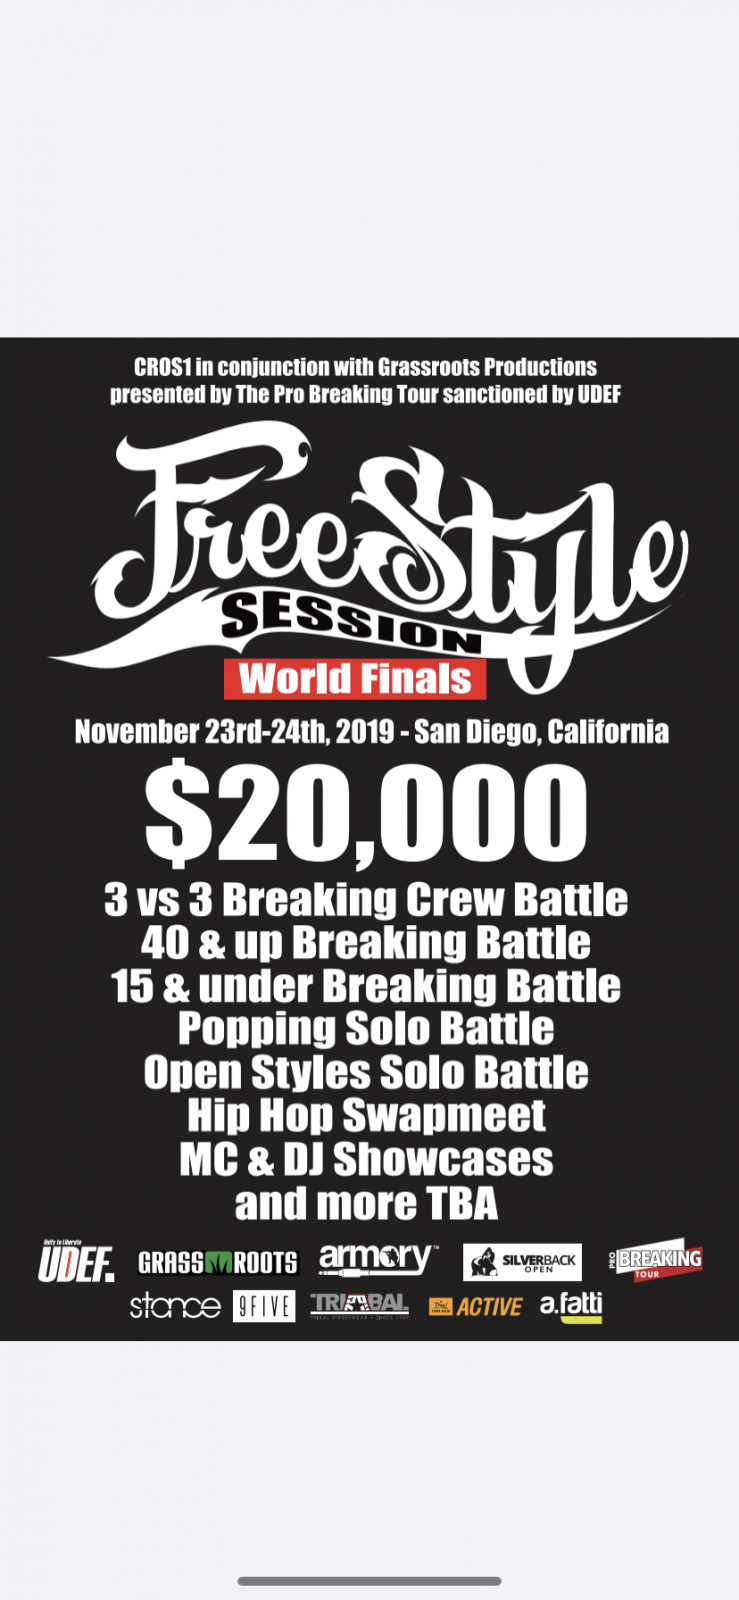 Freestyle Session World Finals 2019 poster